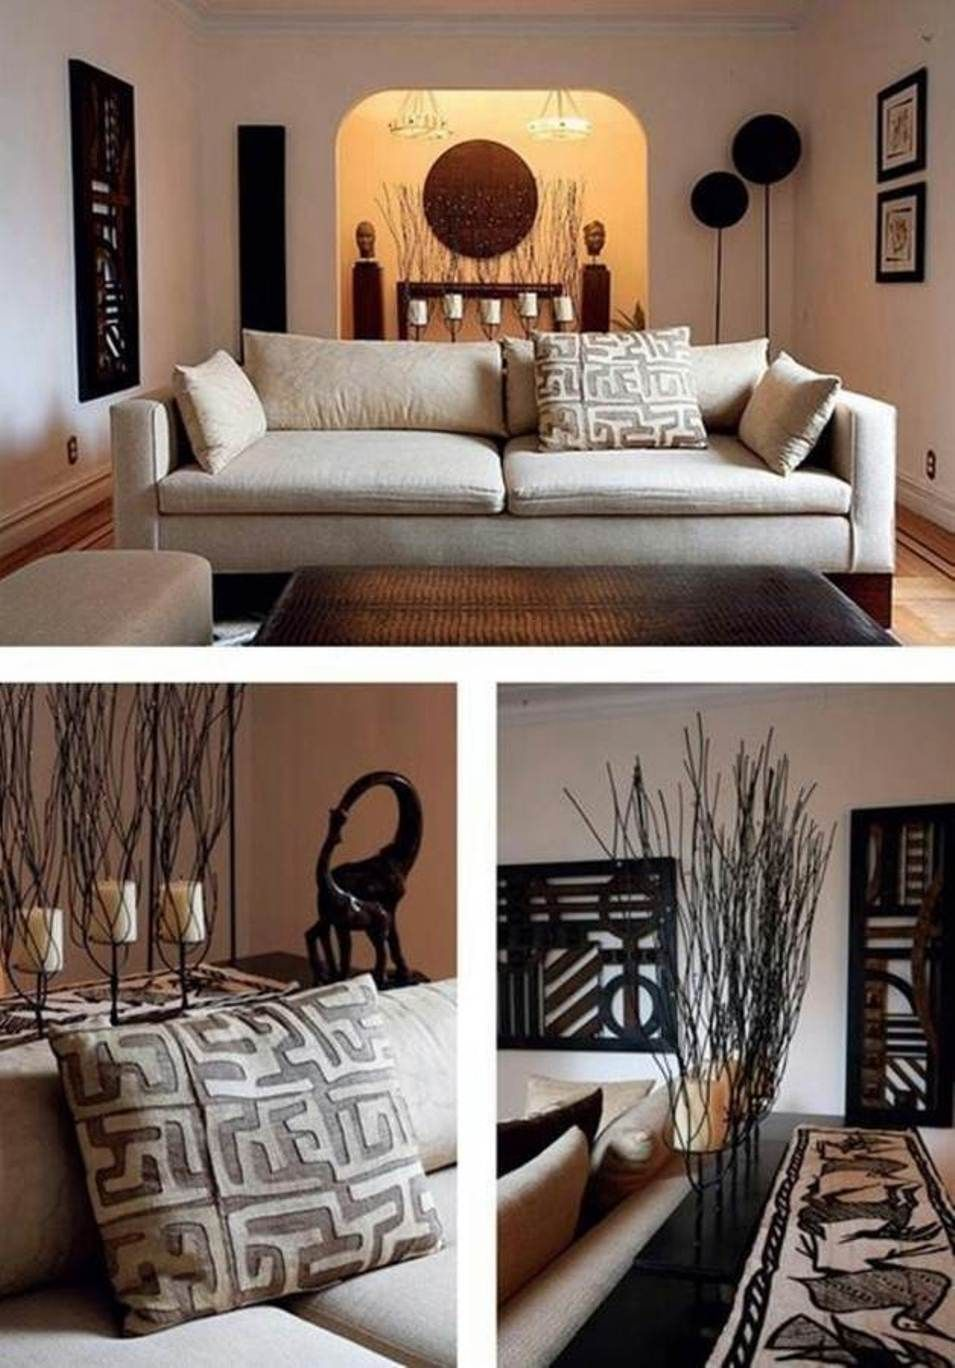 South african decorating ideas african tribal global for Living room decorating ideas nyc